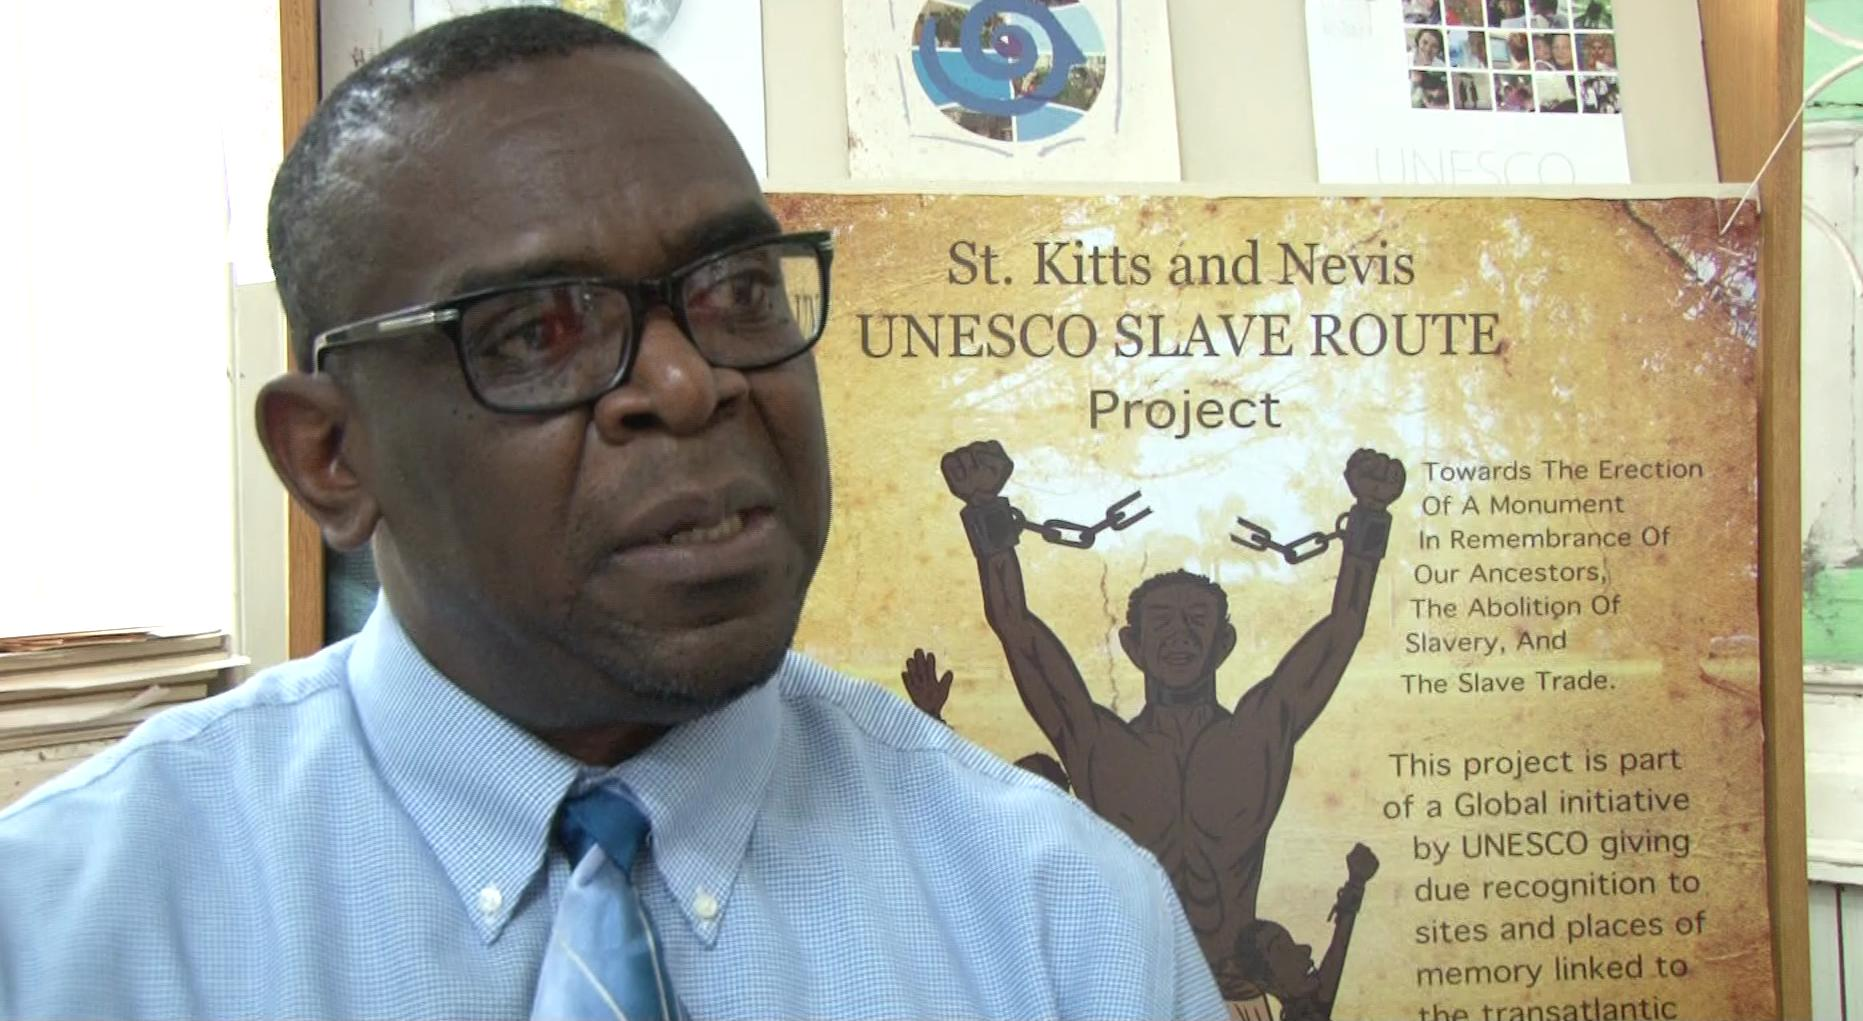 Mr. Antonio Maynard, Secretary General of the St. Kitts and Nevis National Commission for UNESCO